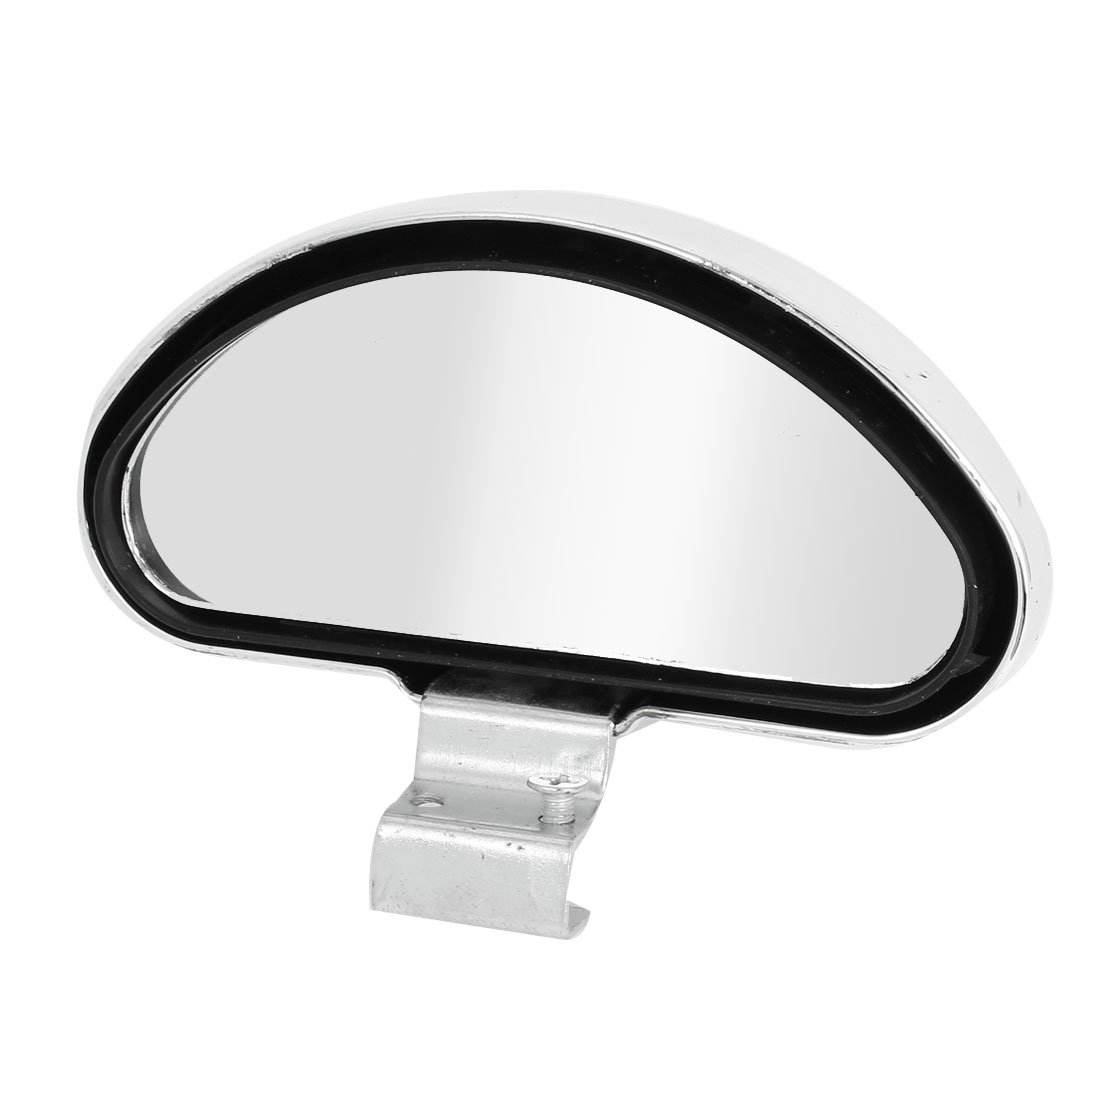 Auto Silver Tone Plastic Adjustable Wide Angle Rearview Blind Spot Mirror